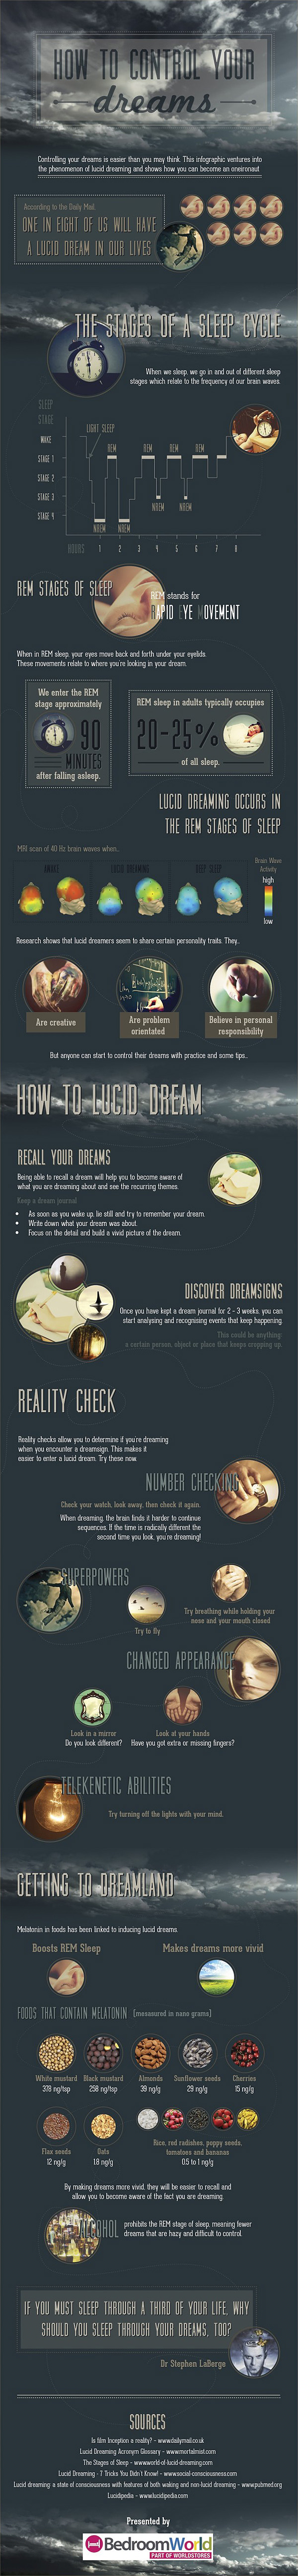 Control your dreams infographic